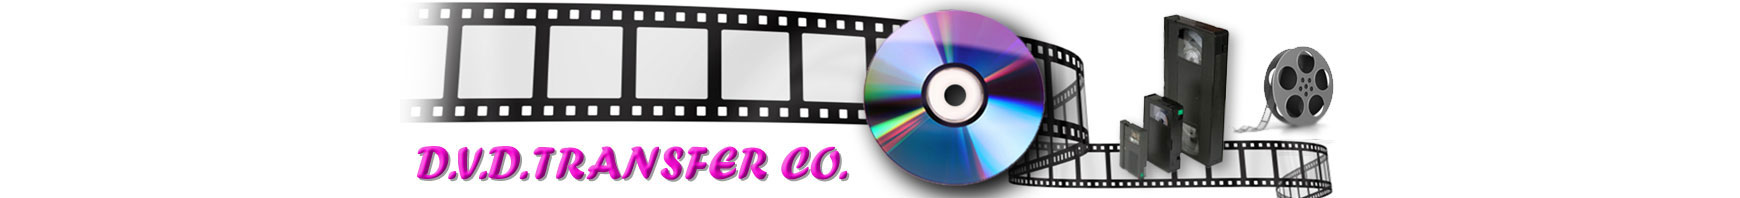 dvd tranfer co background of movie reel and film